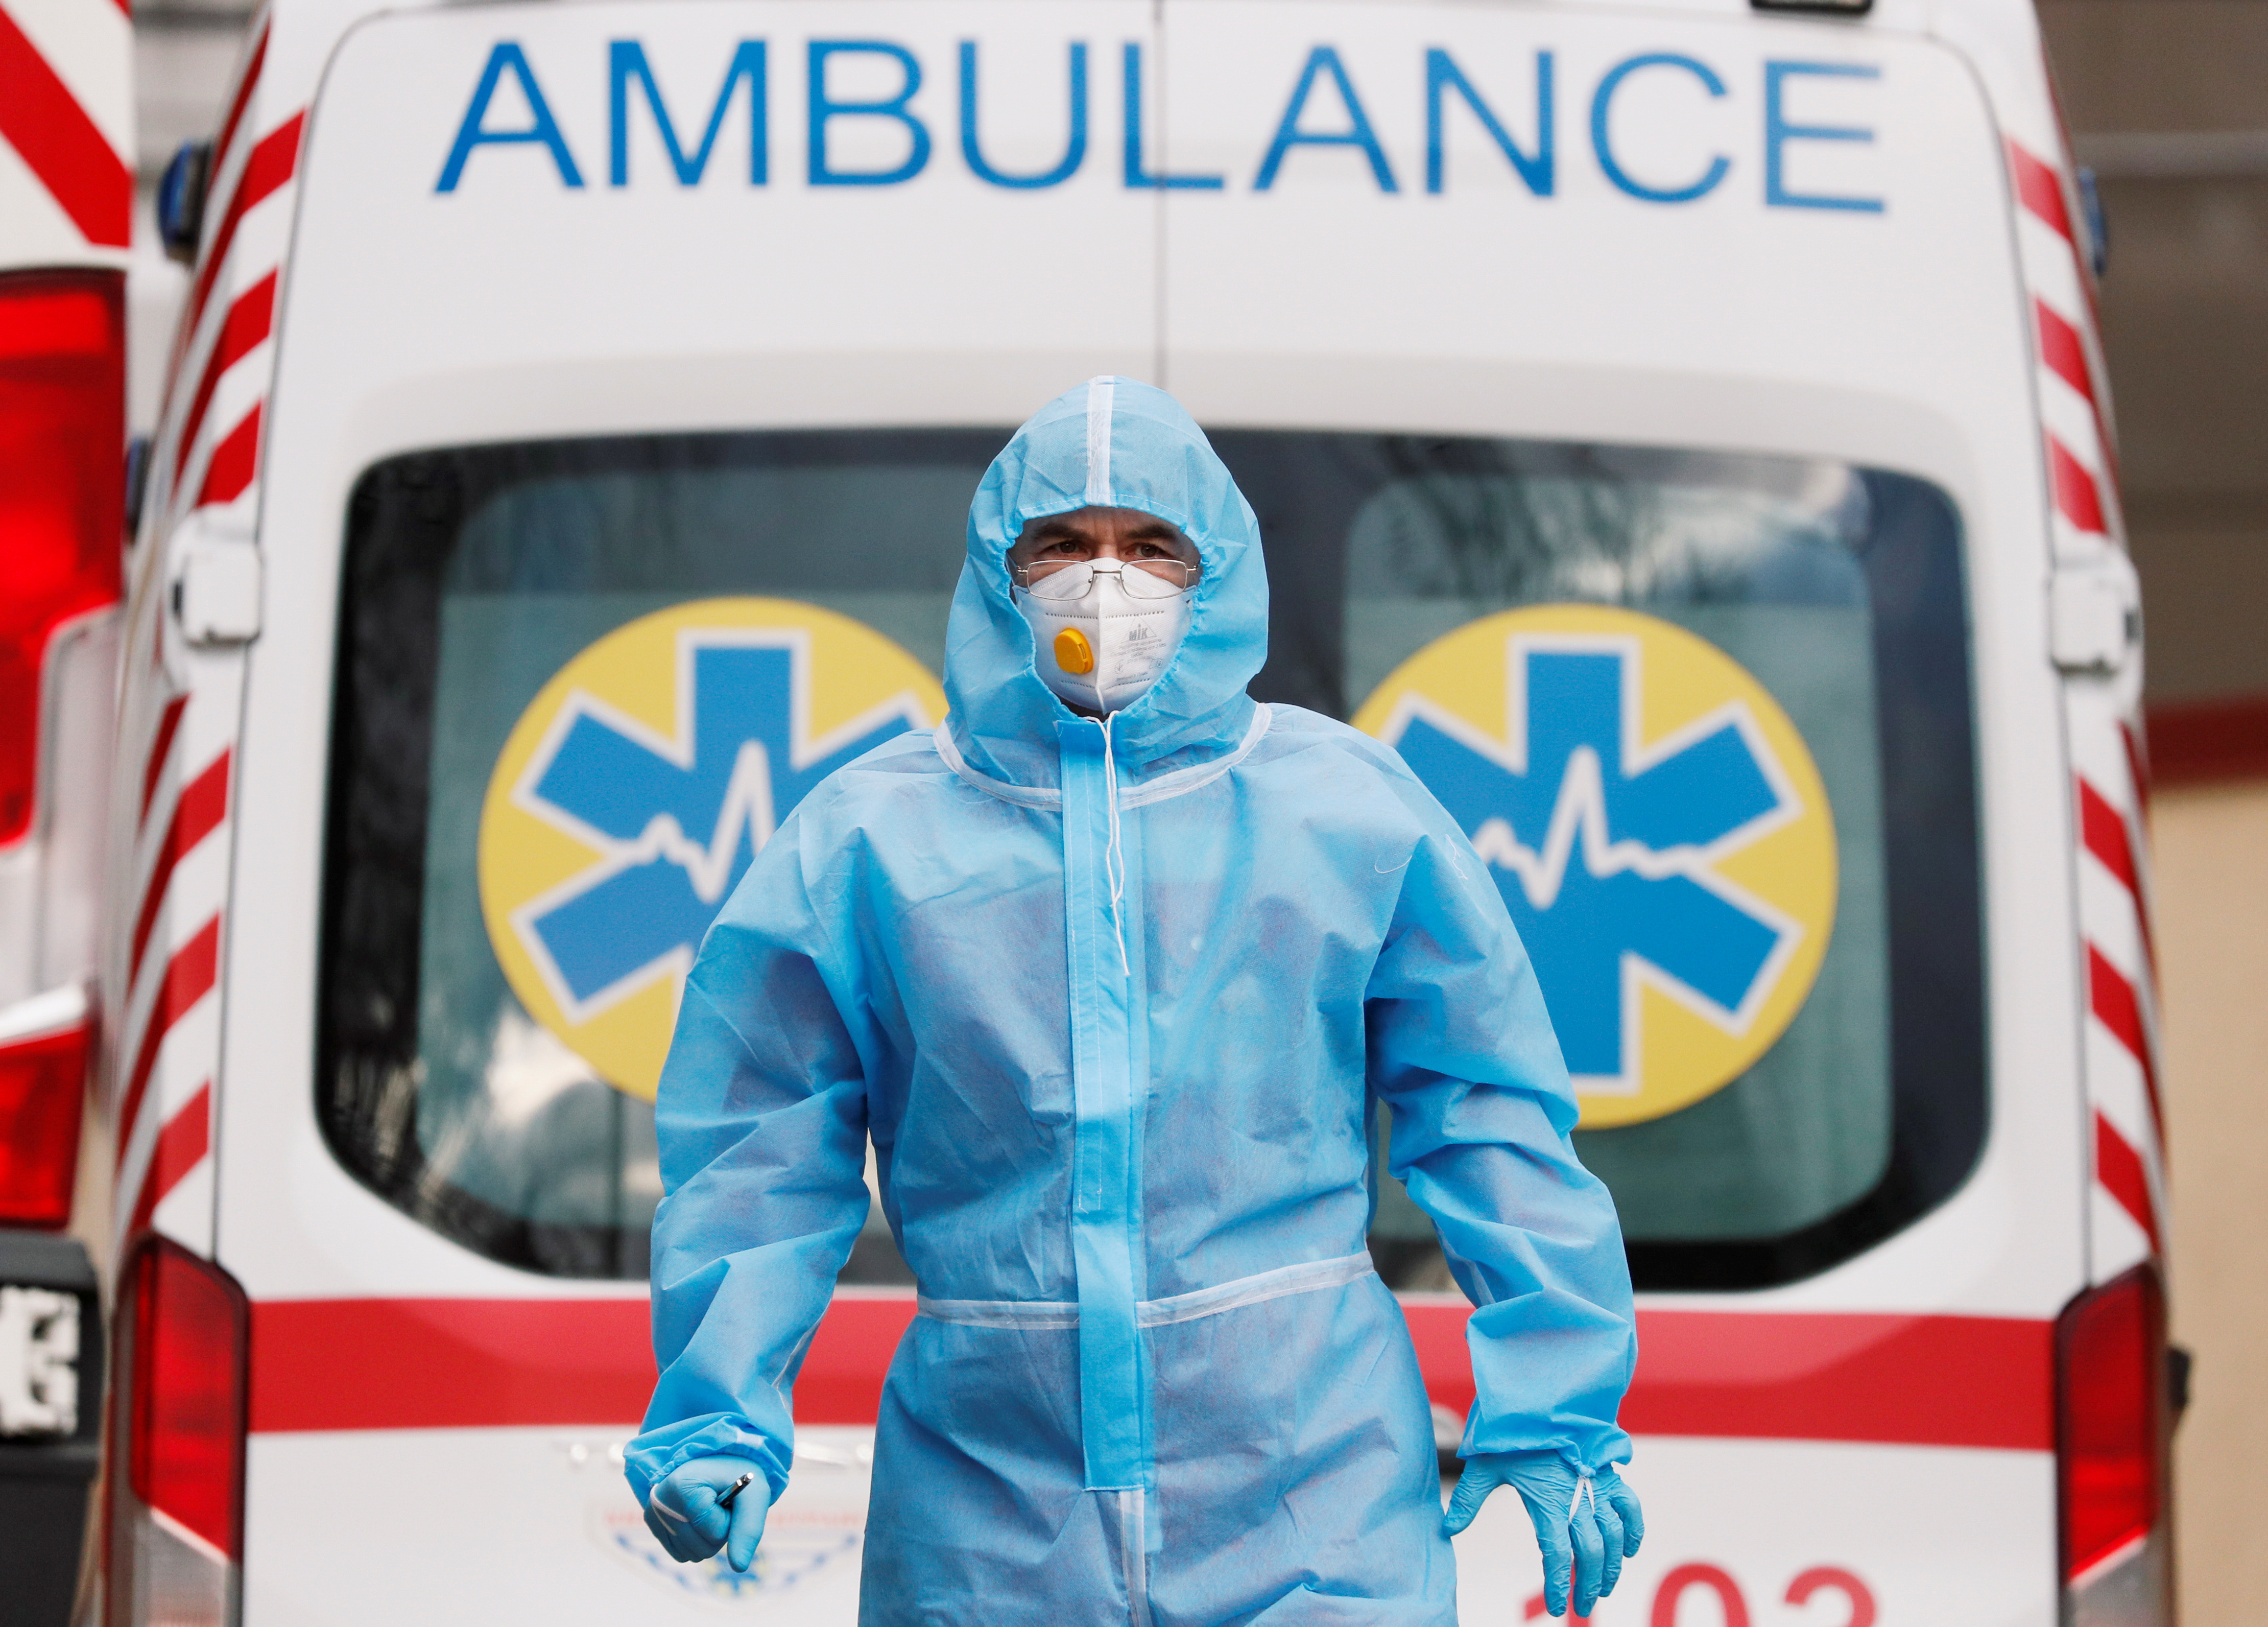 A medical worker wearing protective gear stands next to an ambulance outside a hospital for patients infected with the coronavirus disease (COVID-19) in Kyiv, Ukraine November 24, 2020.  REUTERS/Gleb Garanich